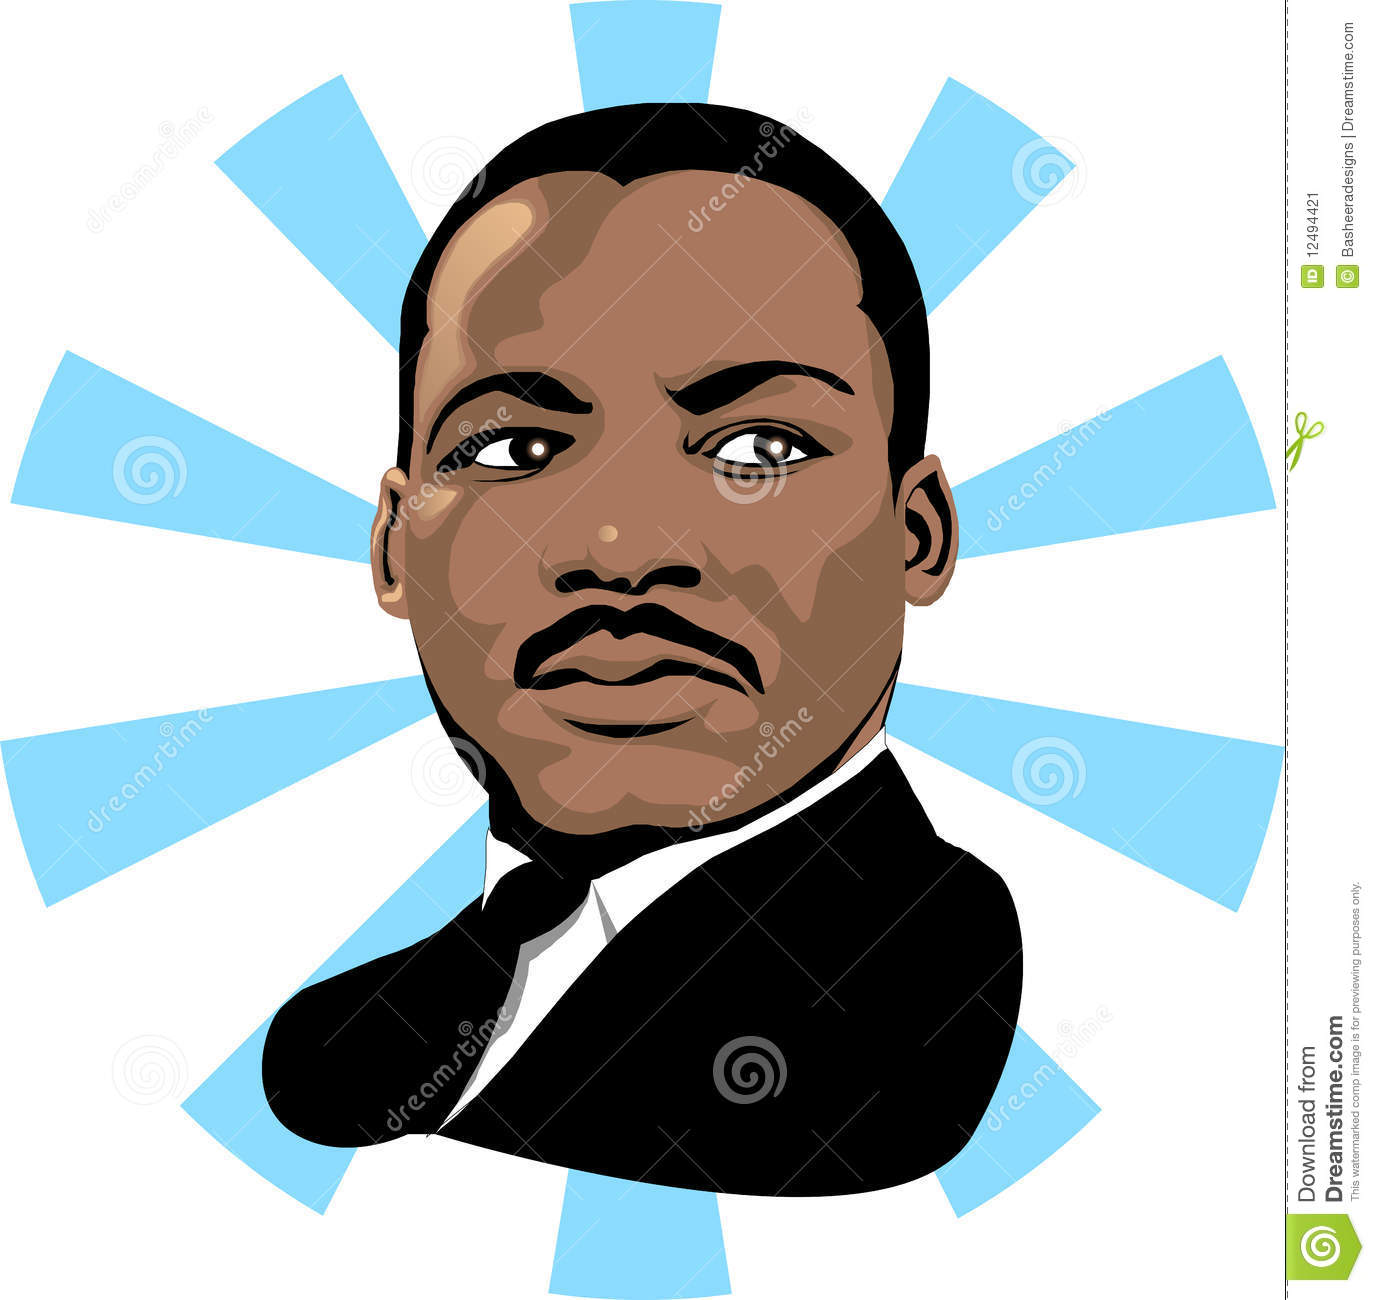 martin luther king 2 editorial photo illustration of king 12494421 rh dreamstime com martin luther king day clipart martin luther king day clipart